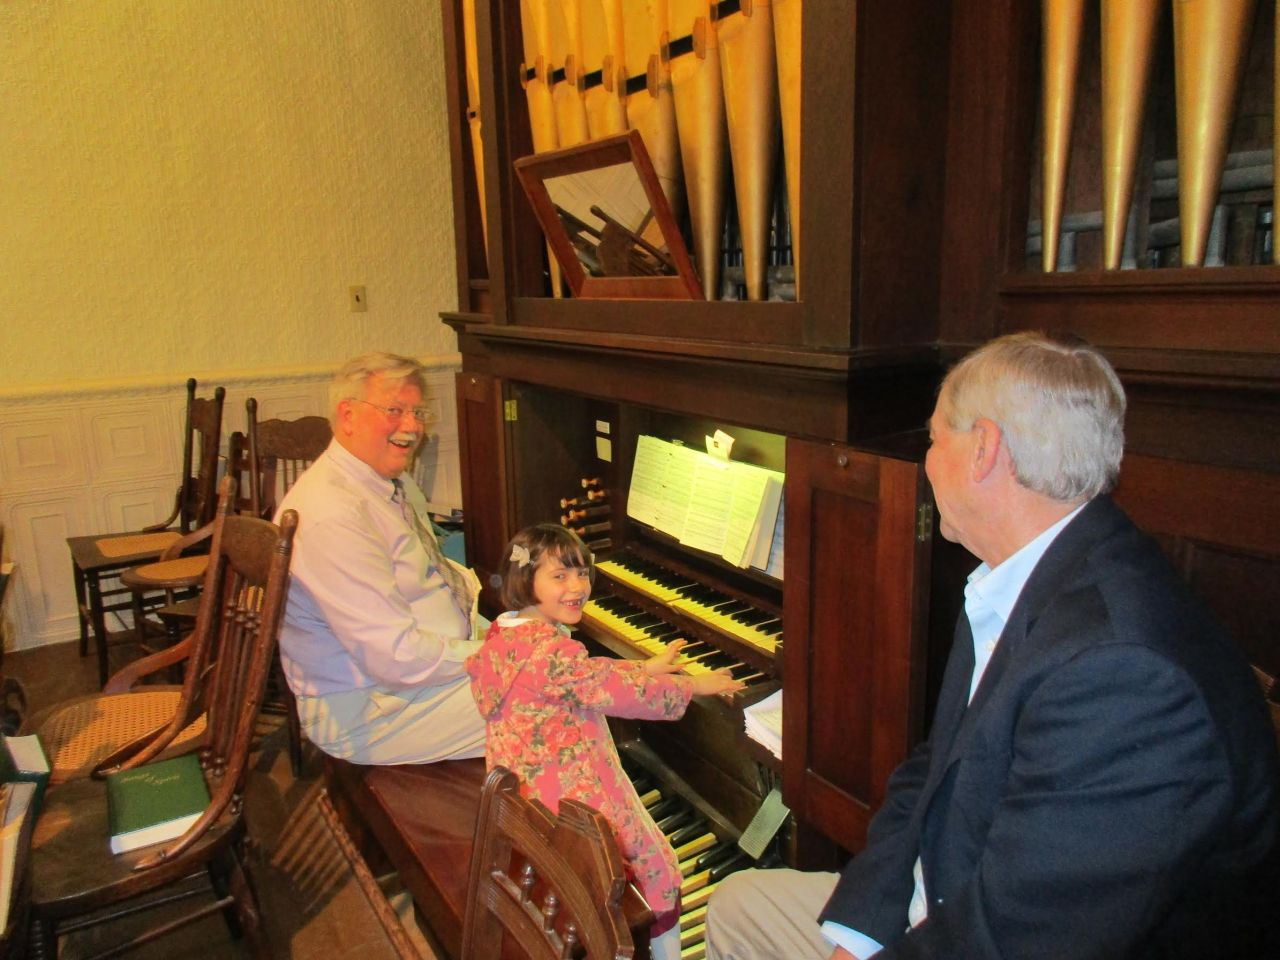 2017 – Sophia visits the church organ (with music director Hal Parker)